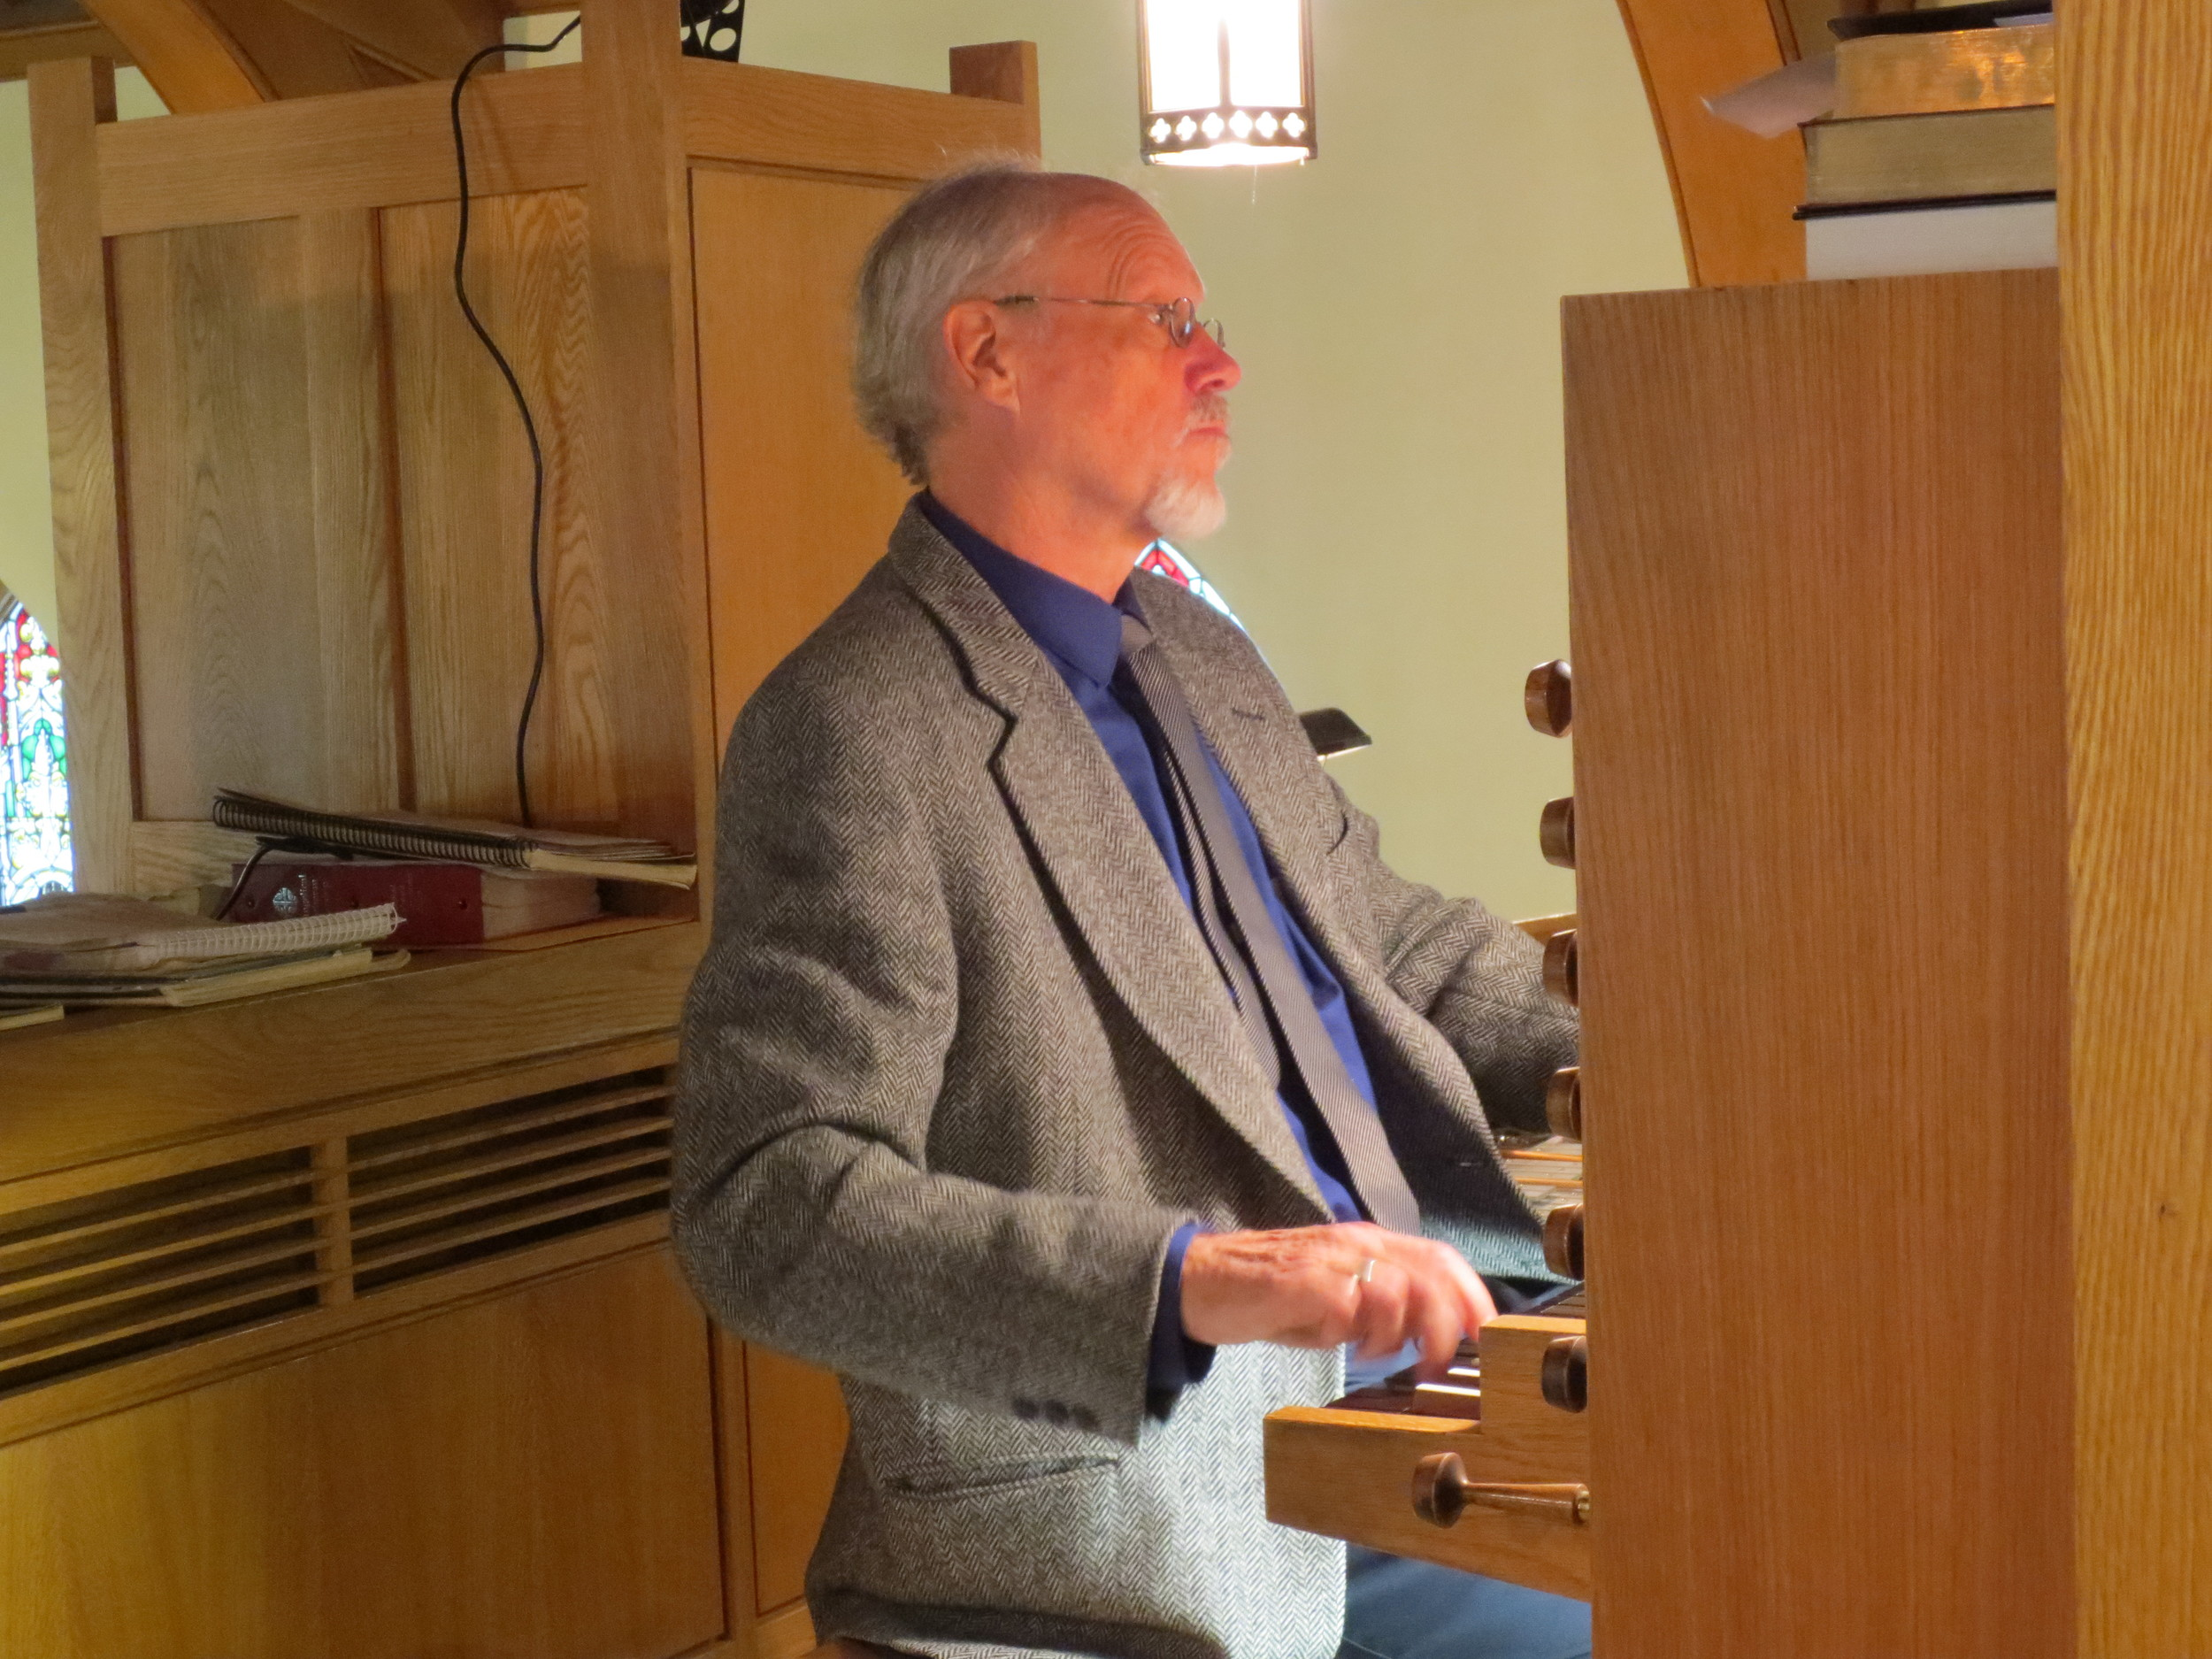 Bradley Moggach at the console of the Wolffe Opus VIII organ.